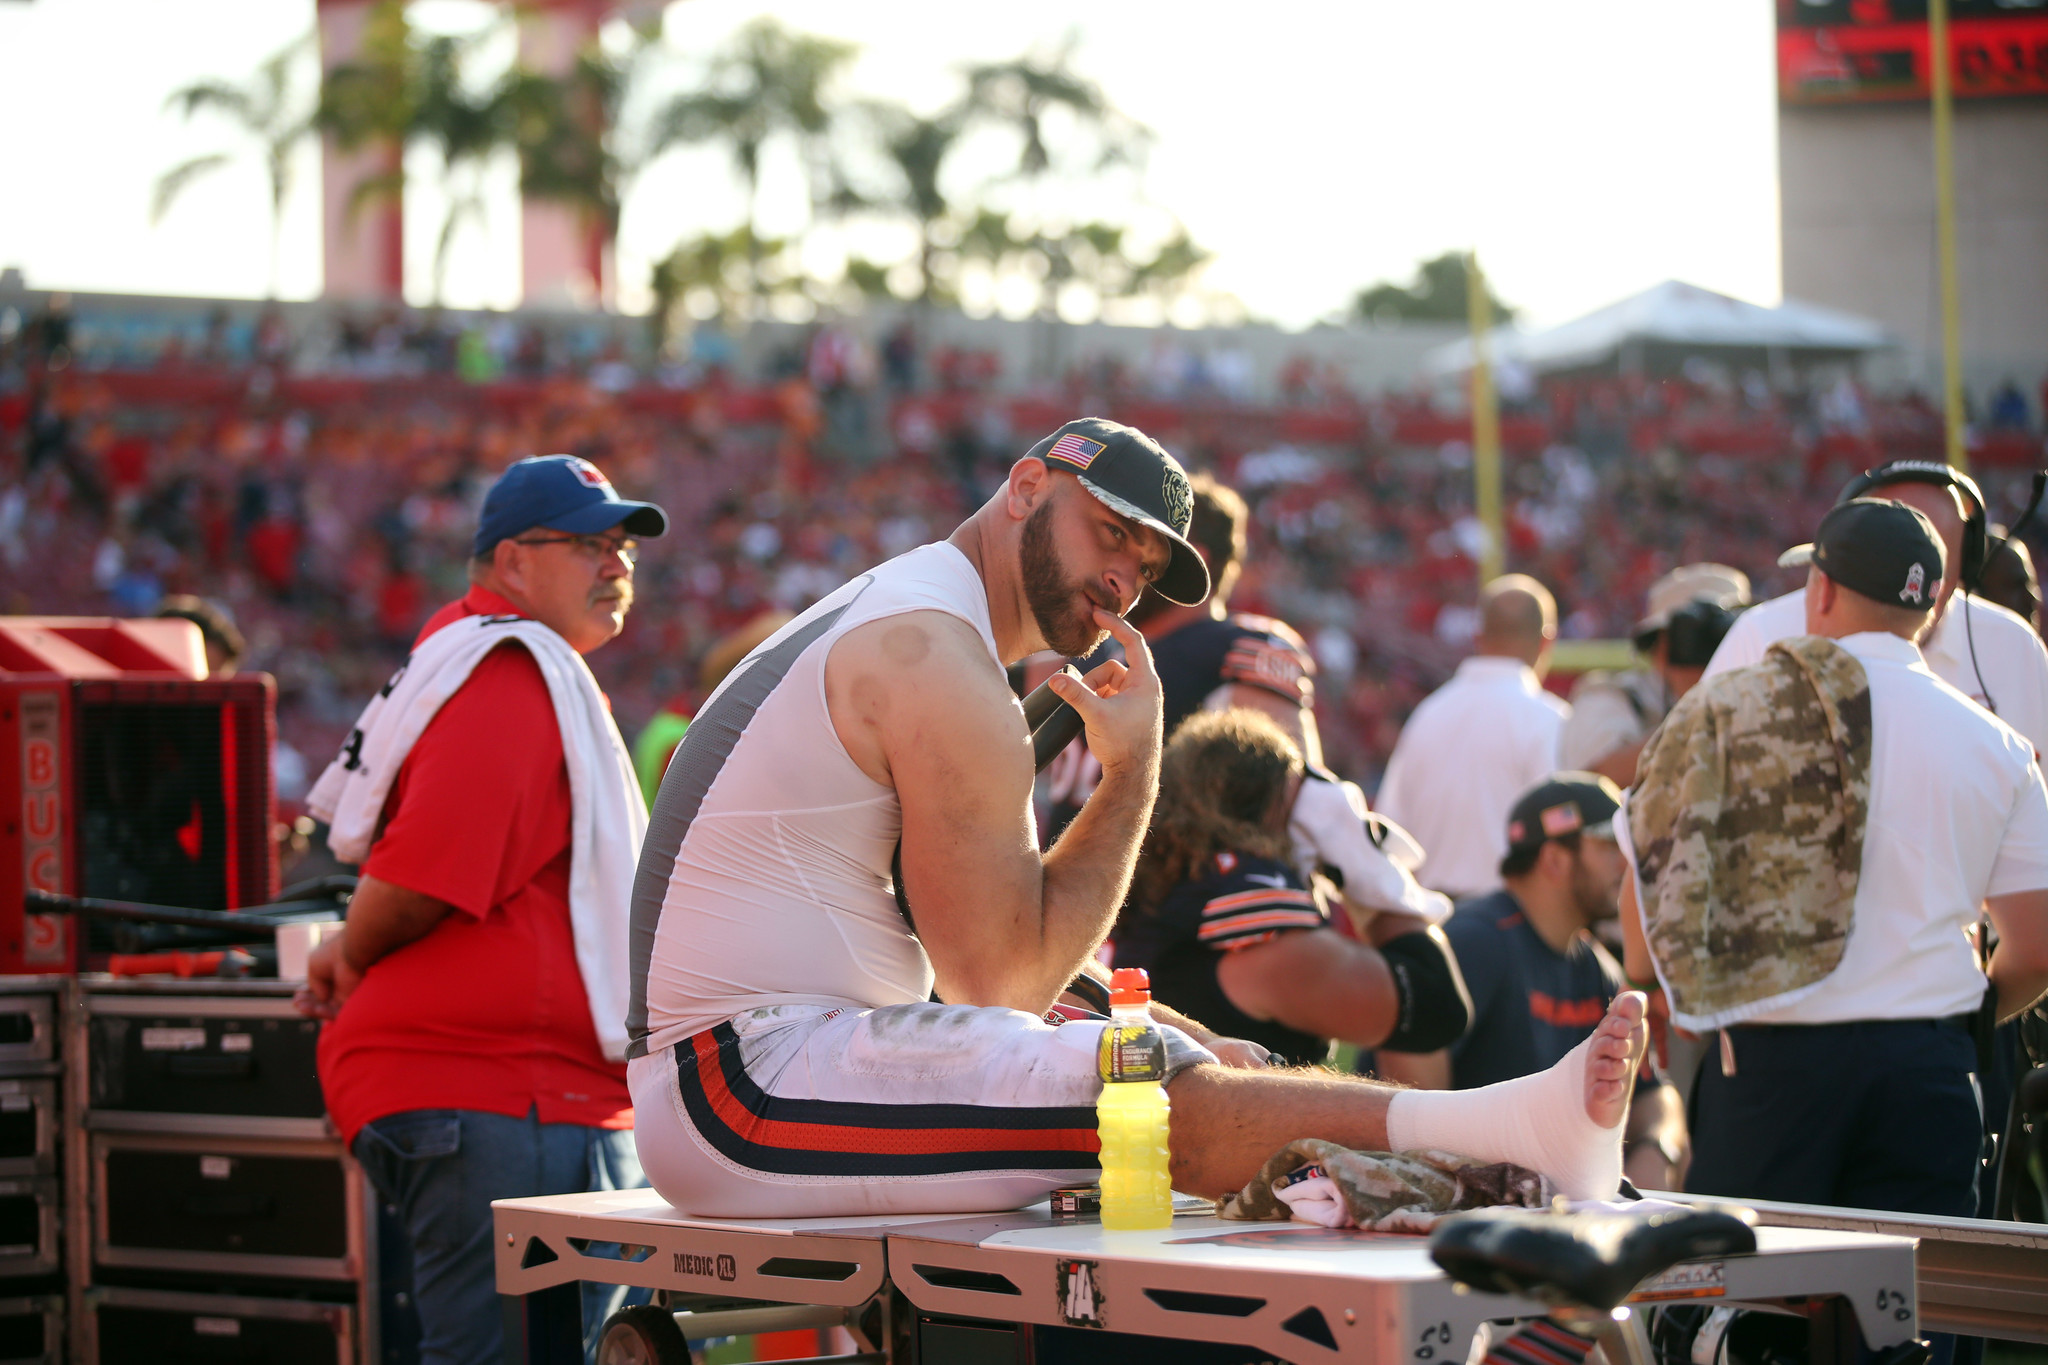 Ct Pick 3 >> Kyle Long's playoff dream fueling him through ankle ...